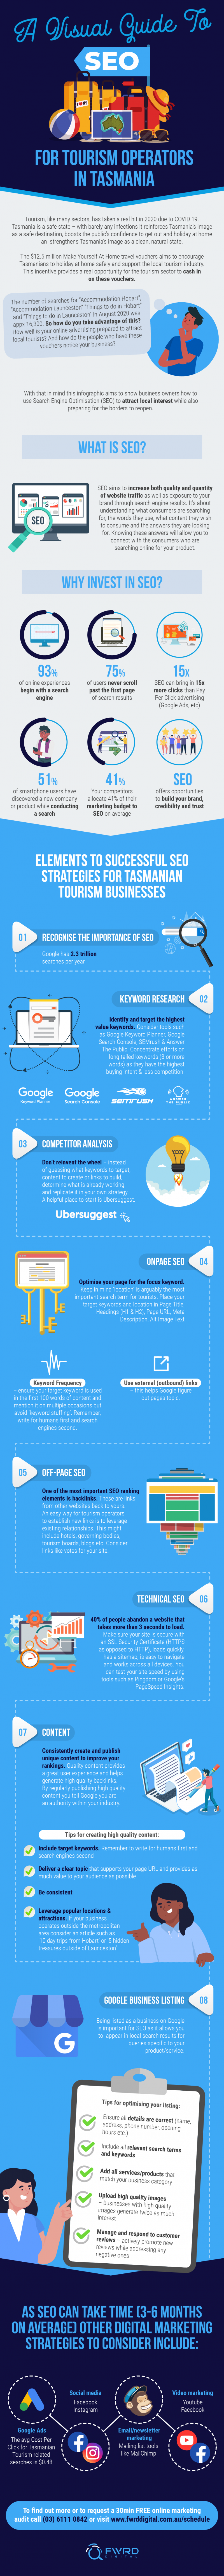 A Visual Guide To SEO For Tourism In Tasmania